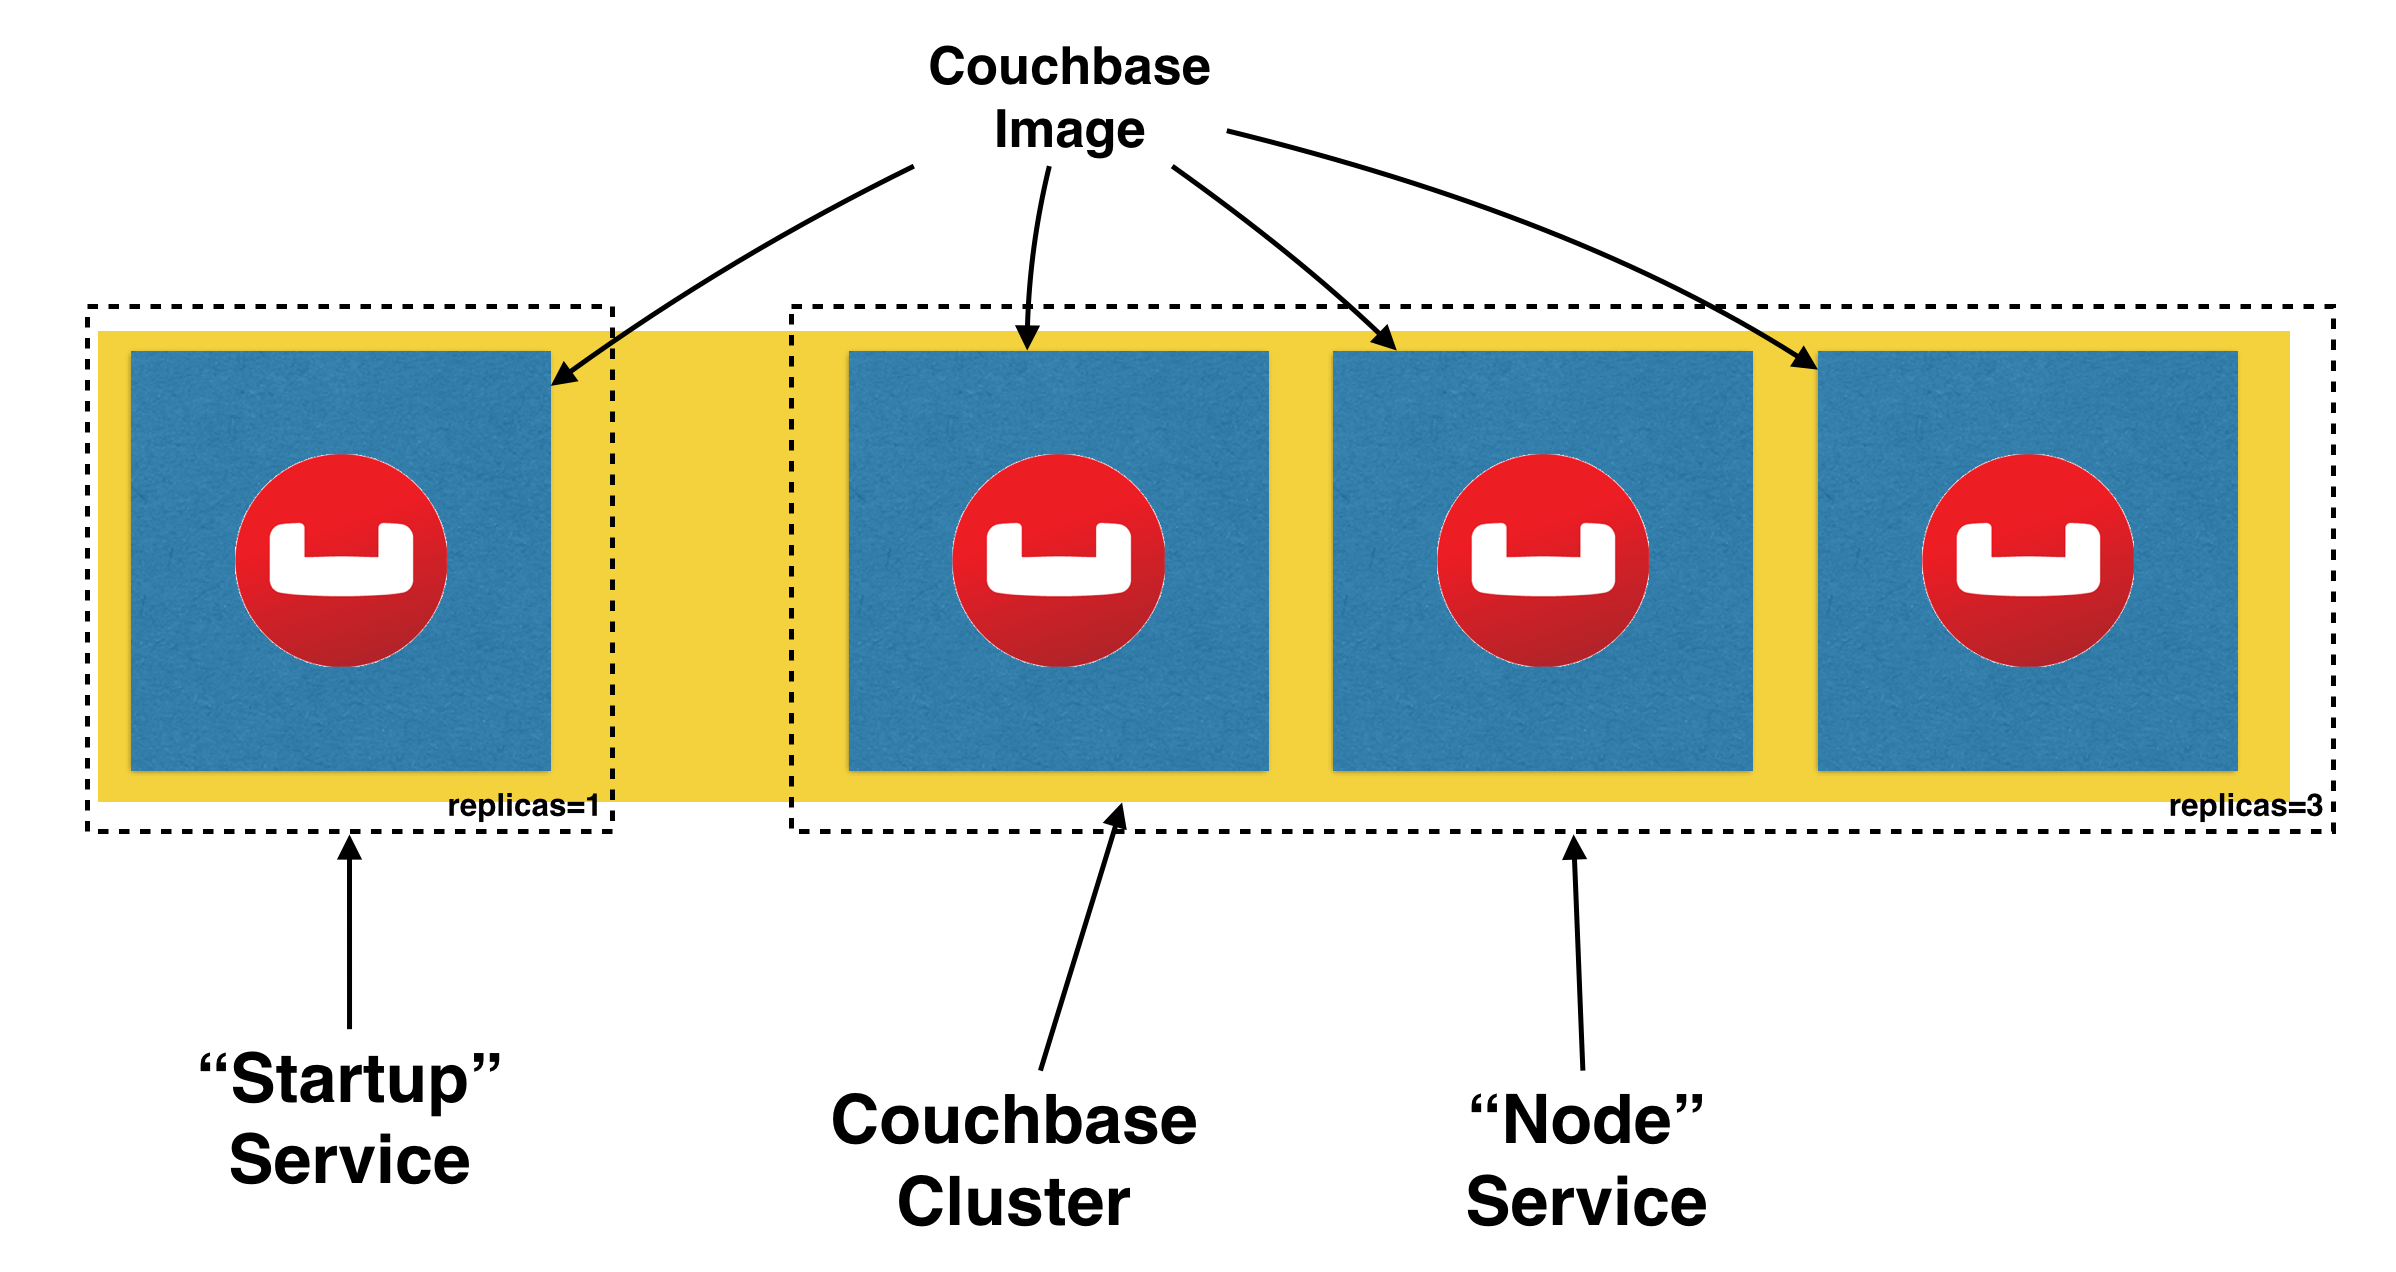 2016-11-18-couchbase-cluster